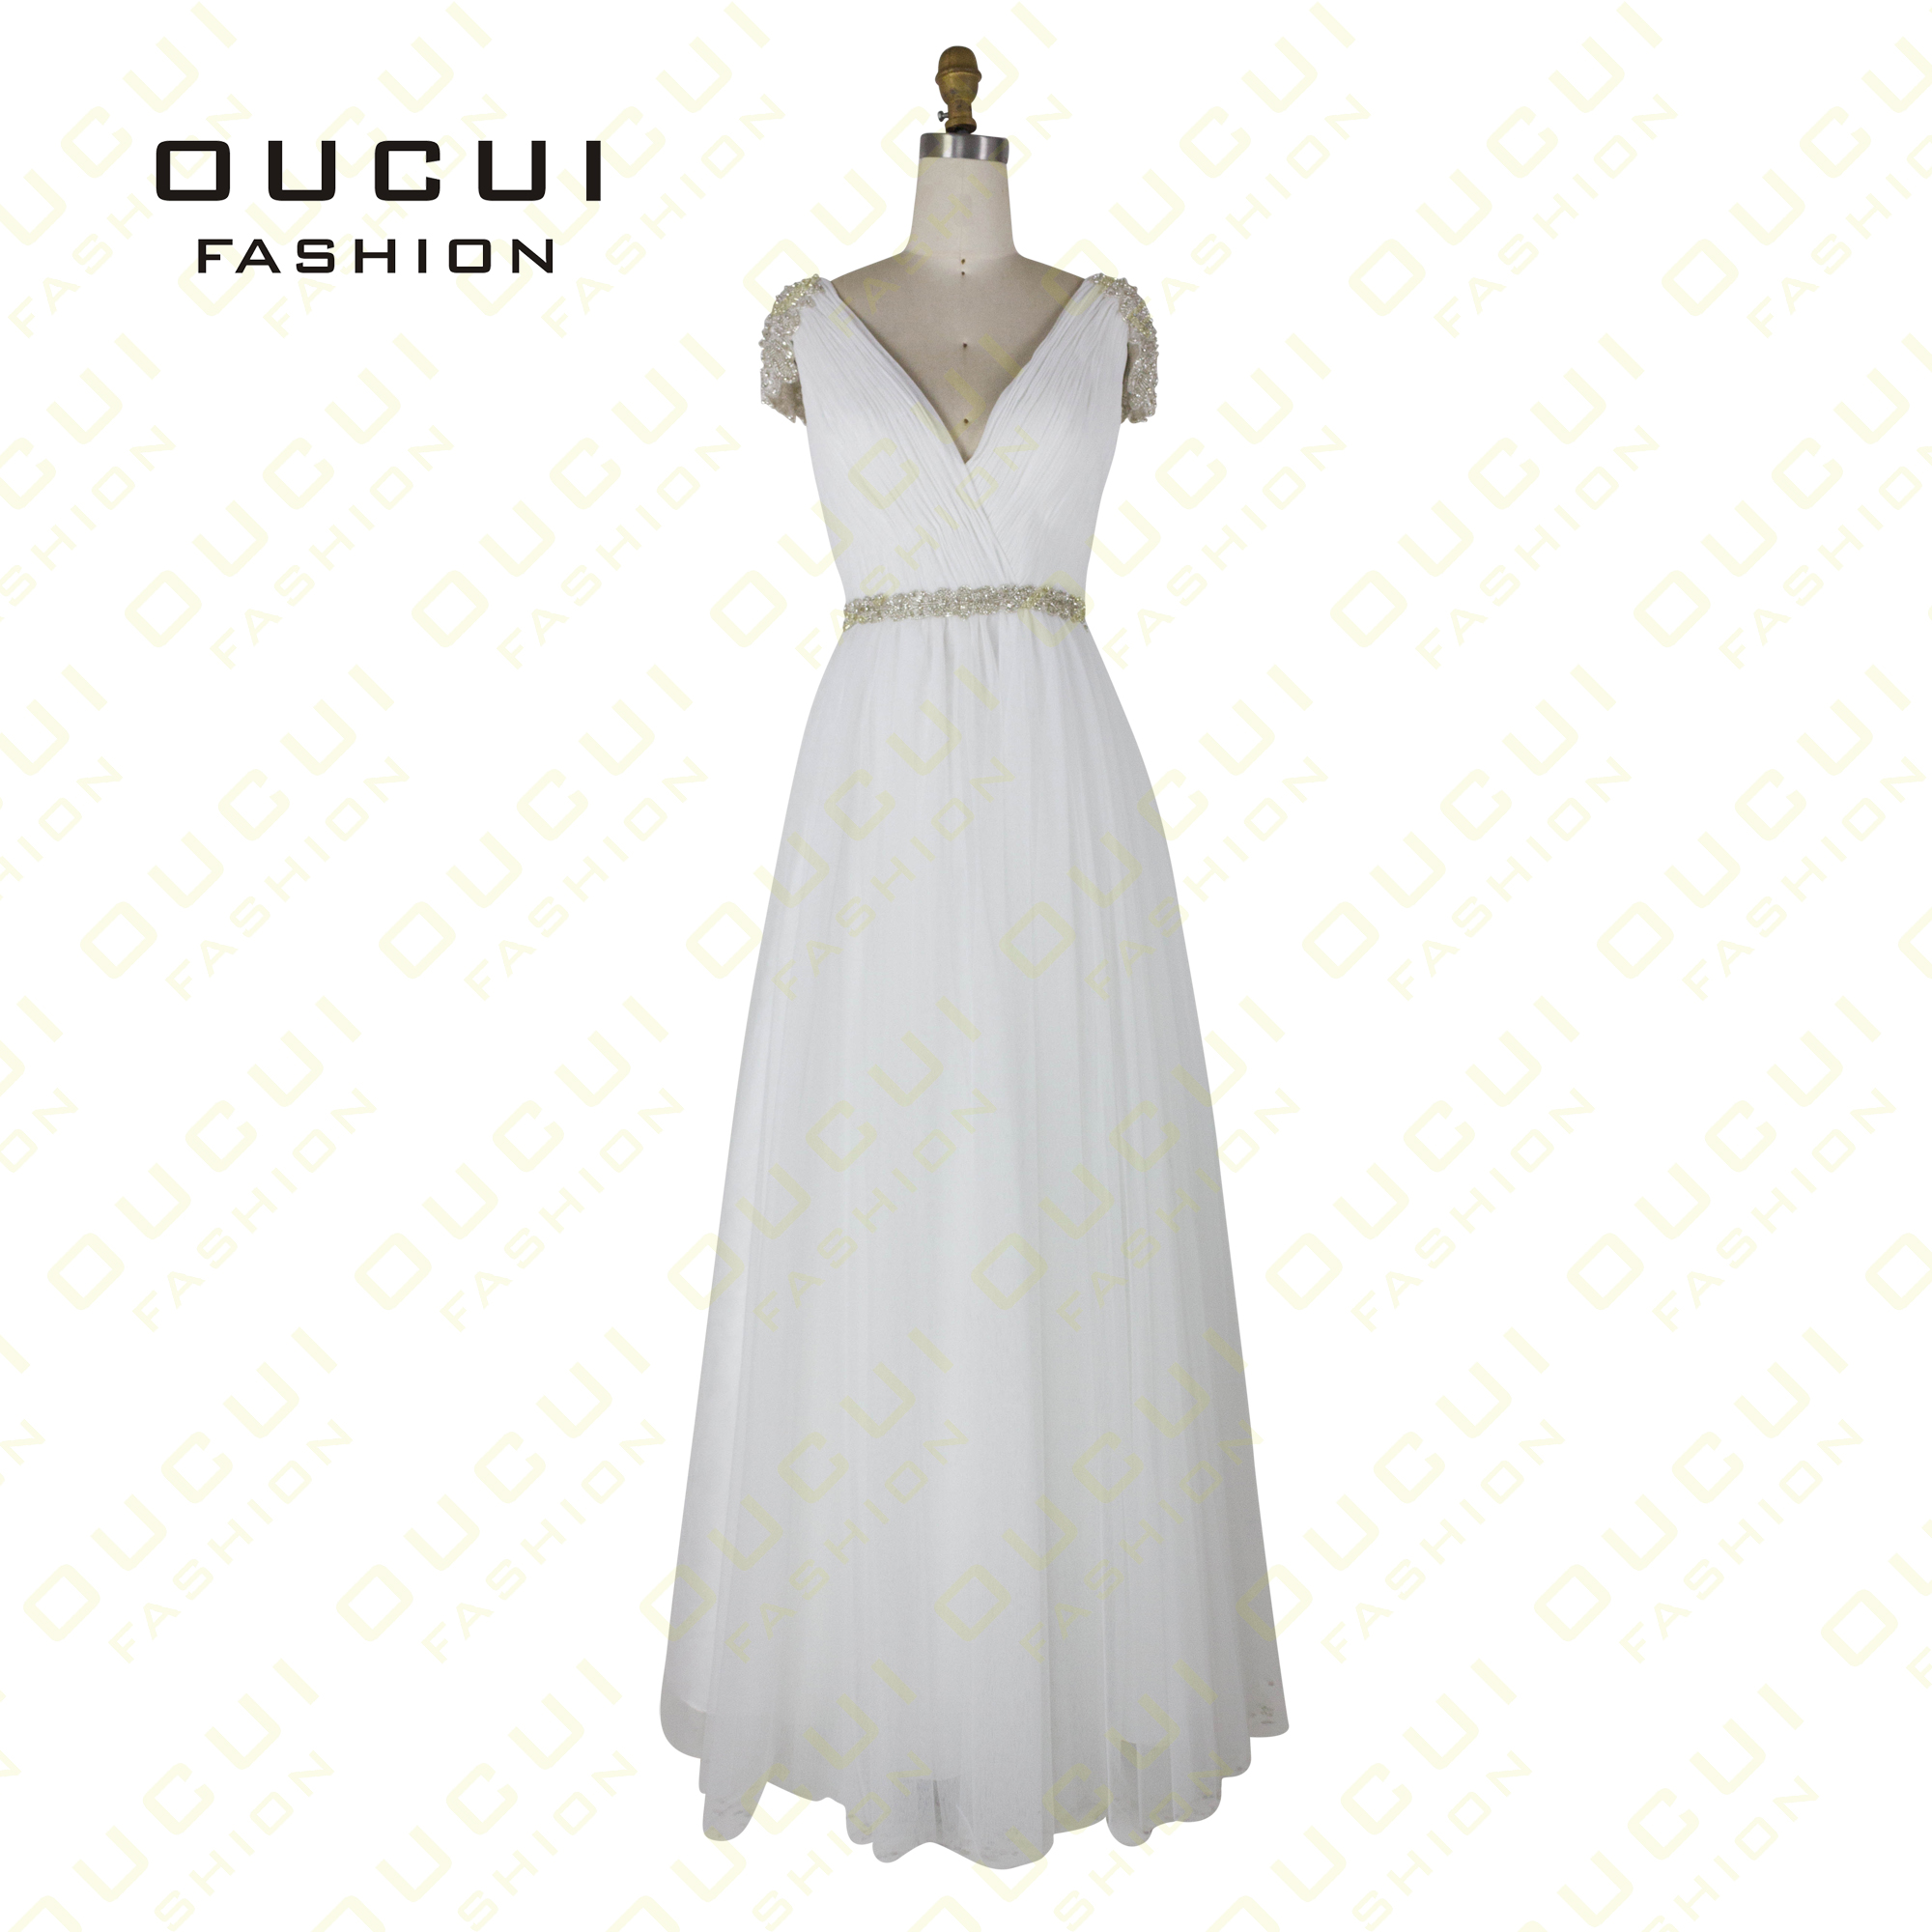 Oucui A-Line Chiffon   Dress   With Stones   Prom     Dresses   2019 Handwork Beading Backless Plus Size Party Gowns Robe De Soiree OL102785